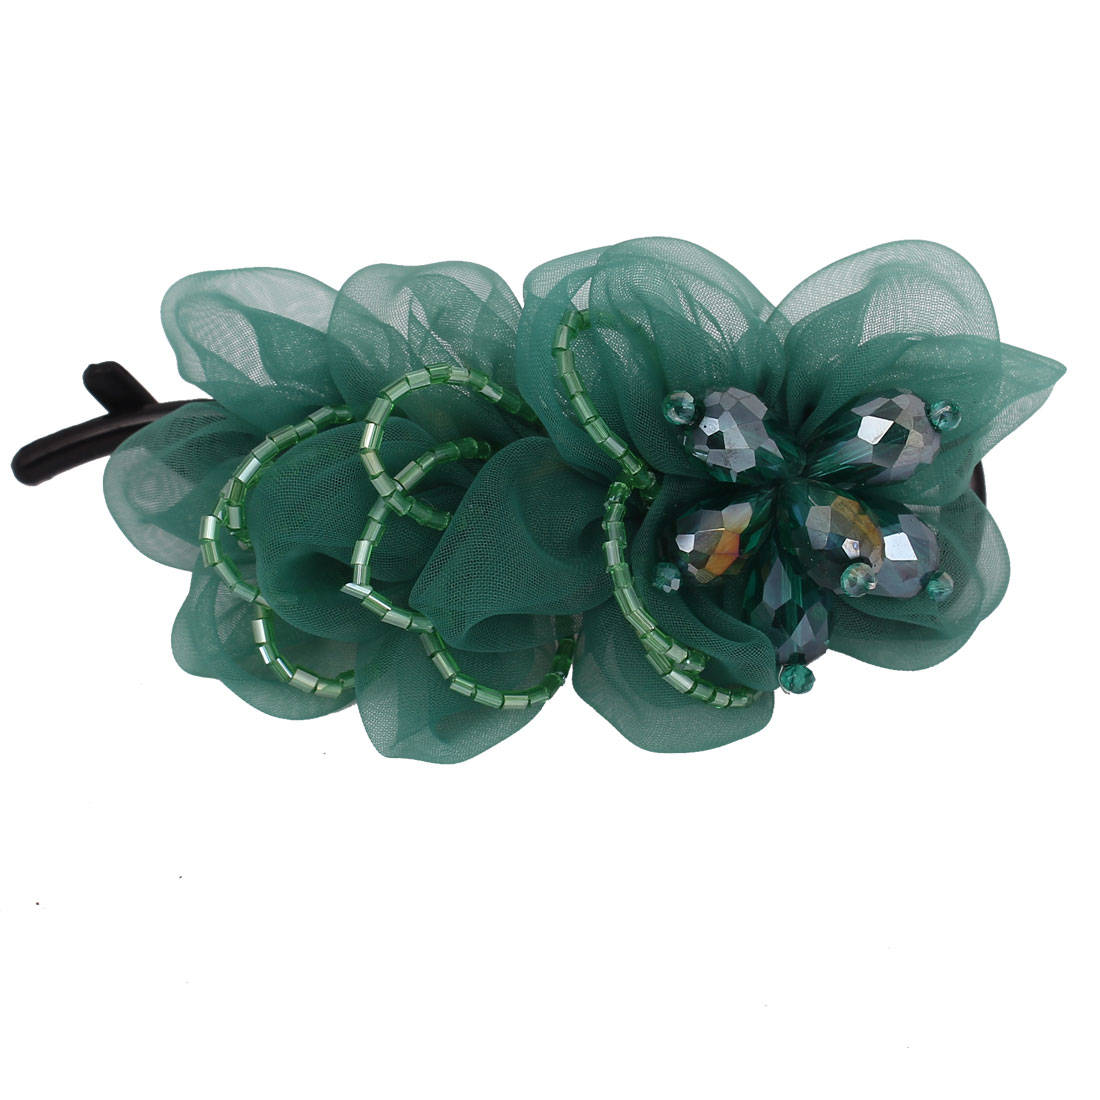 Plastic Teeth Rhinestone Bead Inlaid Flower Ornament Hair Clip Barrette for Lady Green